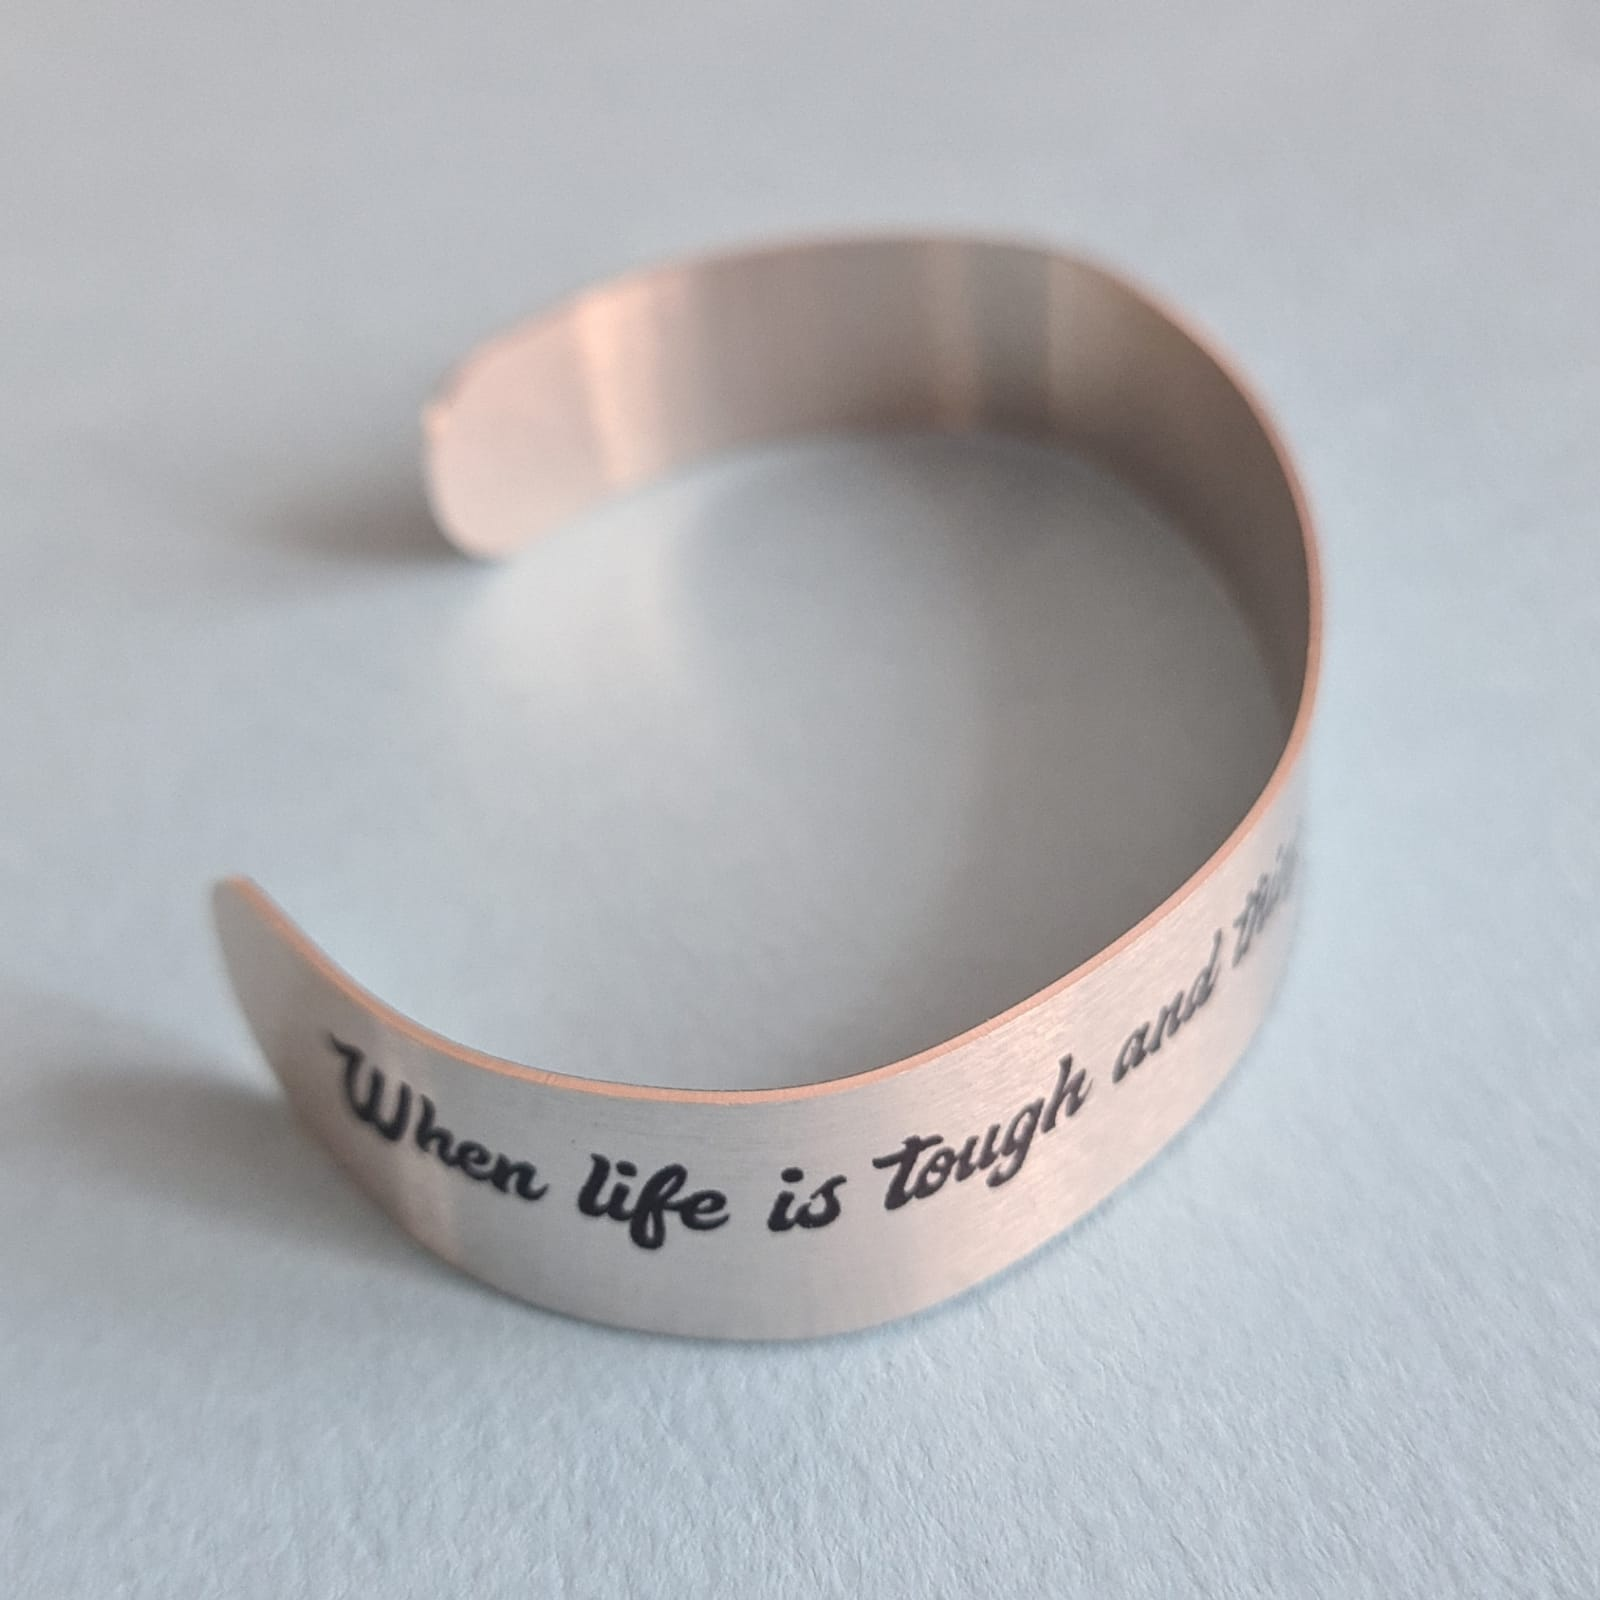 When life is tough and things get rough, I'll be there to hold your hand quote bracelet bangle side